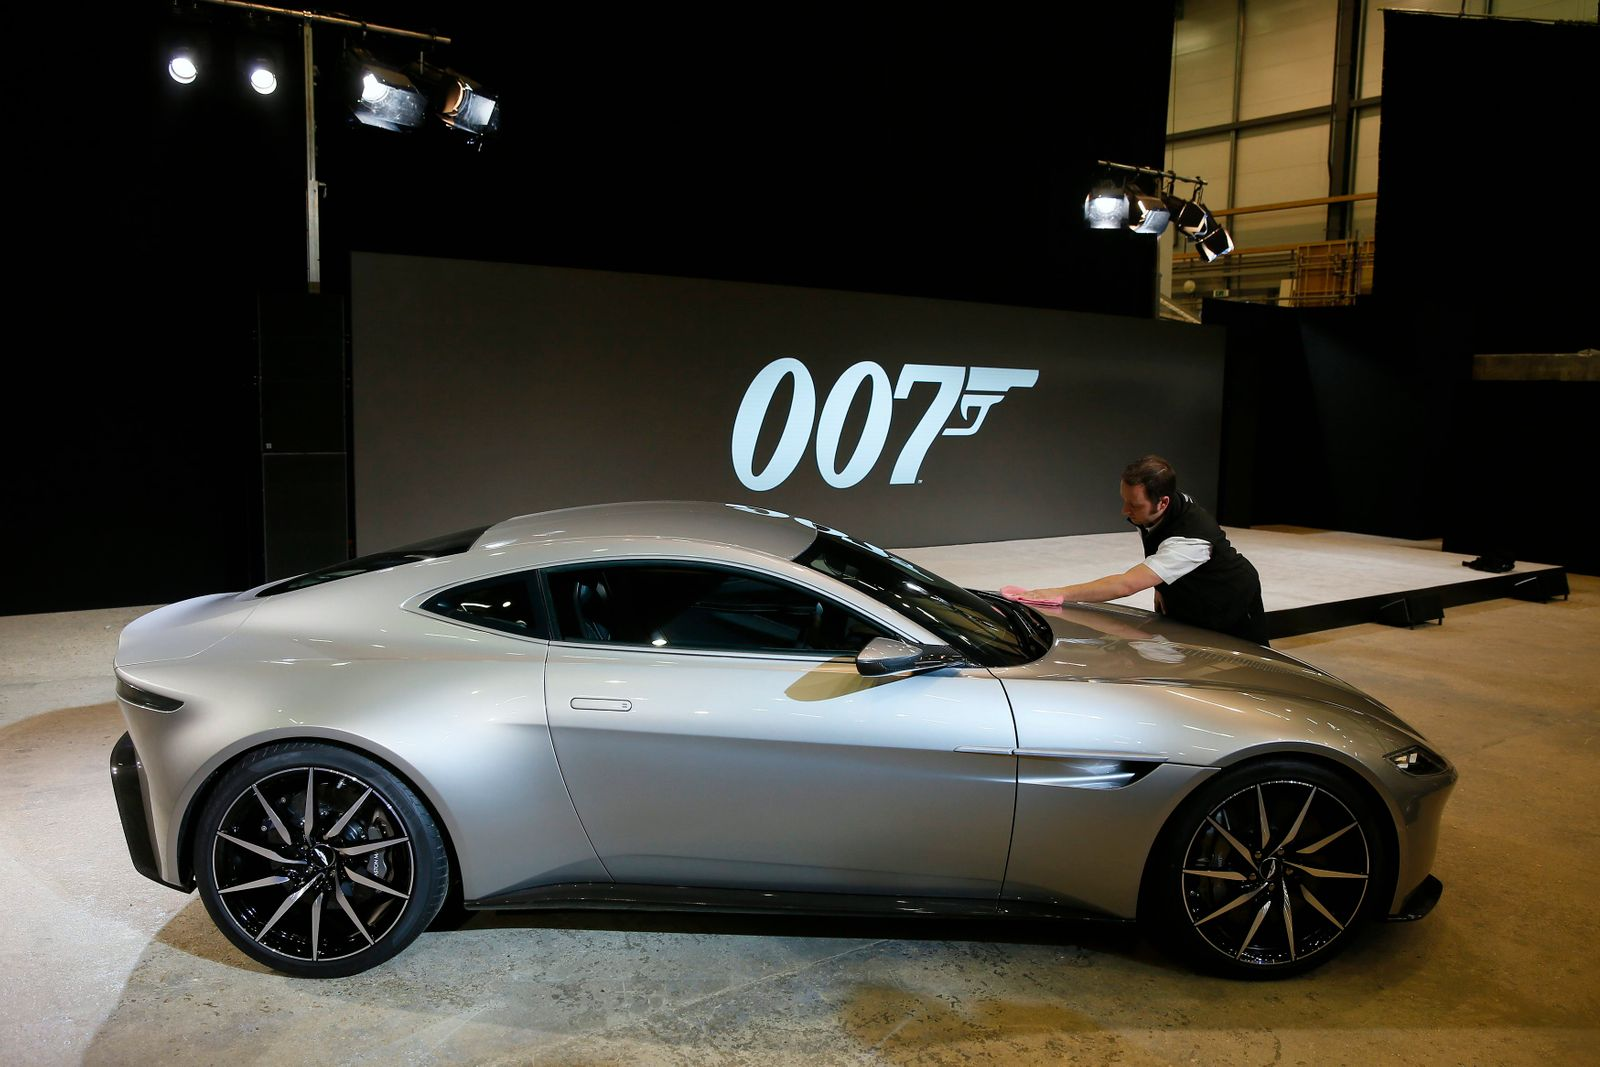 """A worker polishes an Aston Martin DB10 car during an event to mark the start of production for the new James Bond film """"Spectre"""", at Pinewood Studios"""